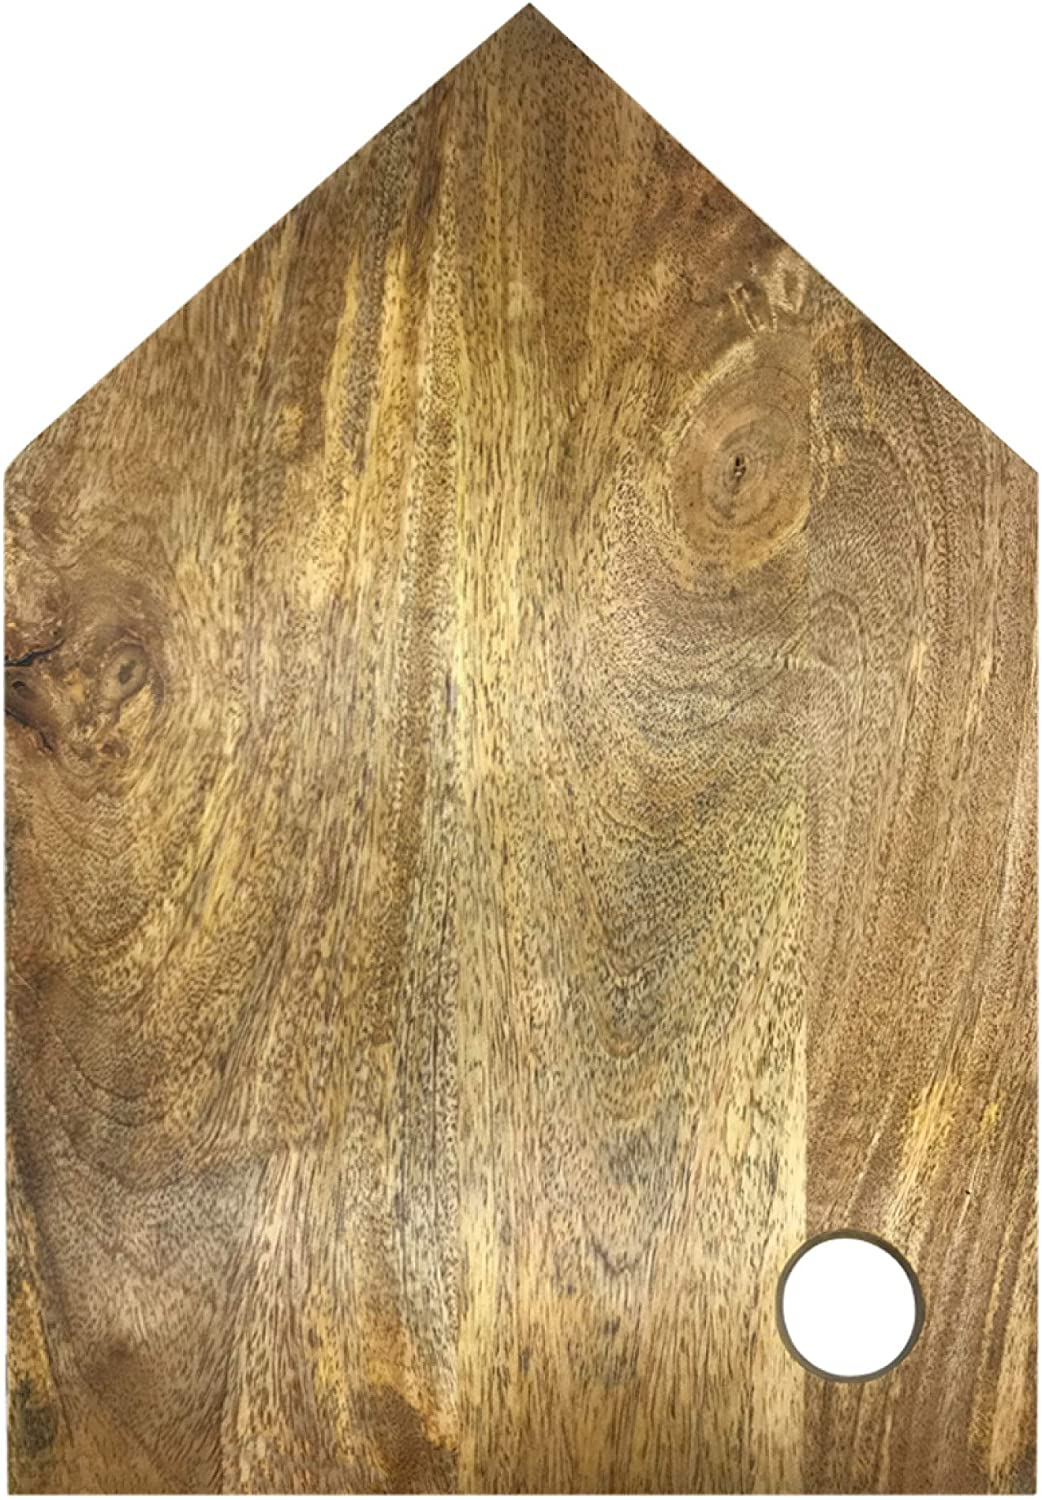 Latter-Day Home Wood Finally popular Very popular brand Chopping Board Wooden for - Kitc